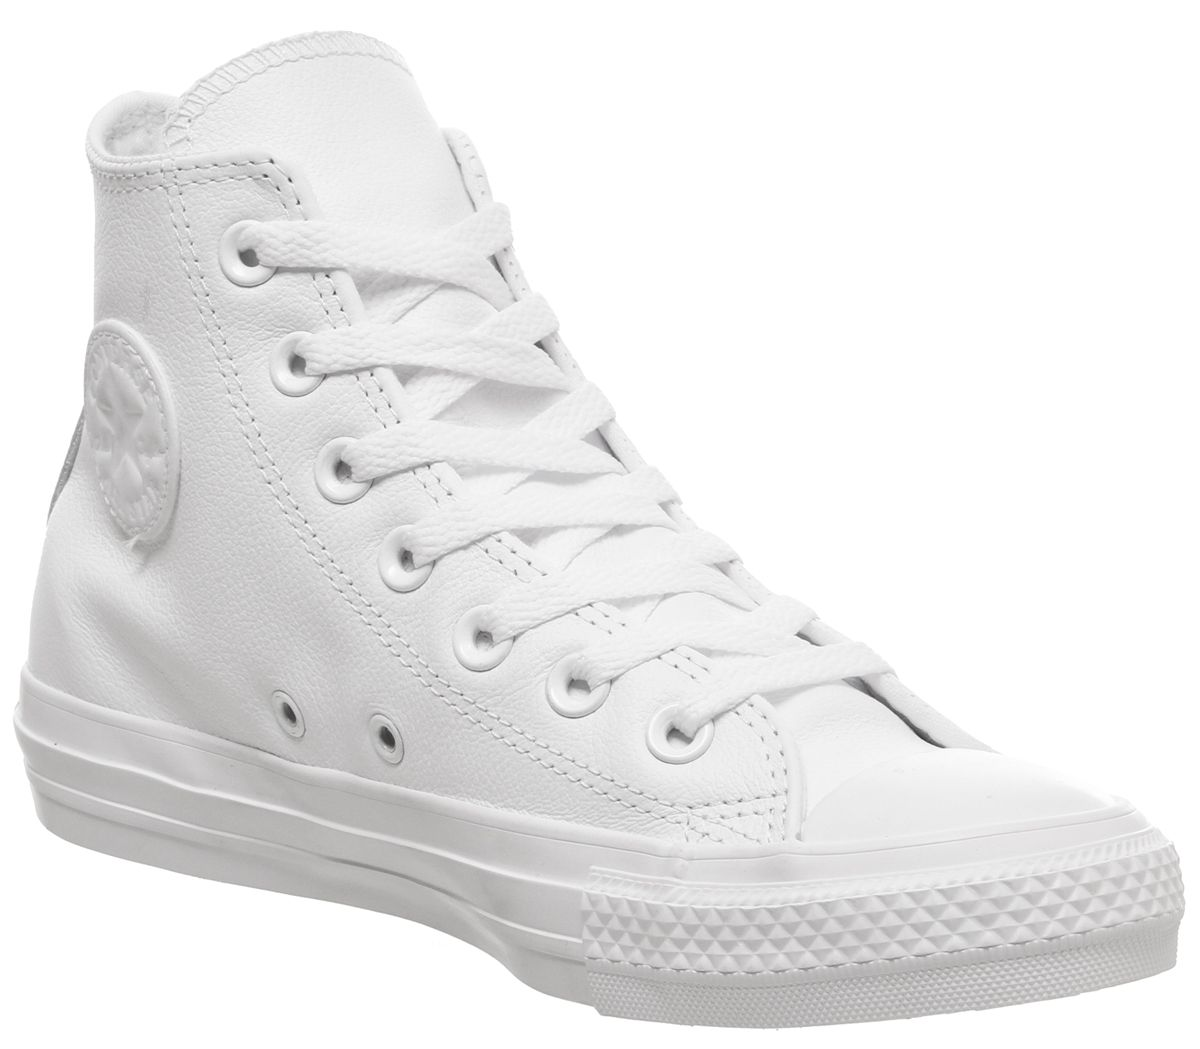 7d9107f3f2d4 Converse All Star Hi Leather White Mono - Unisex Sports